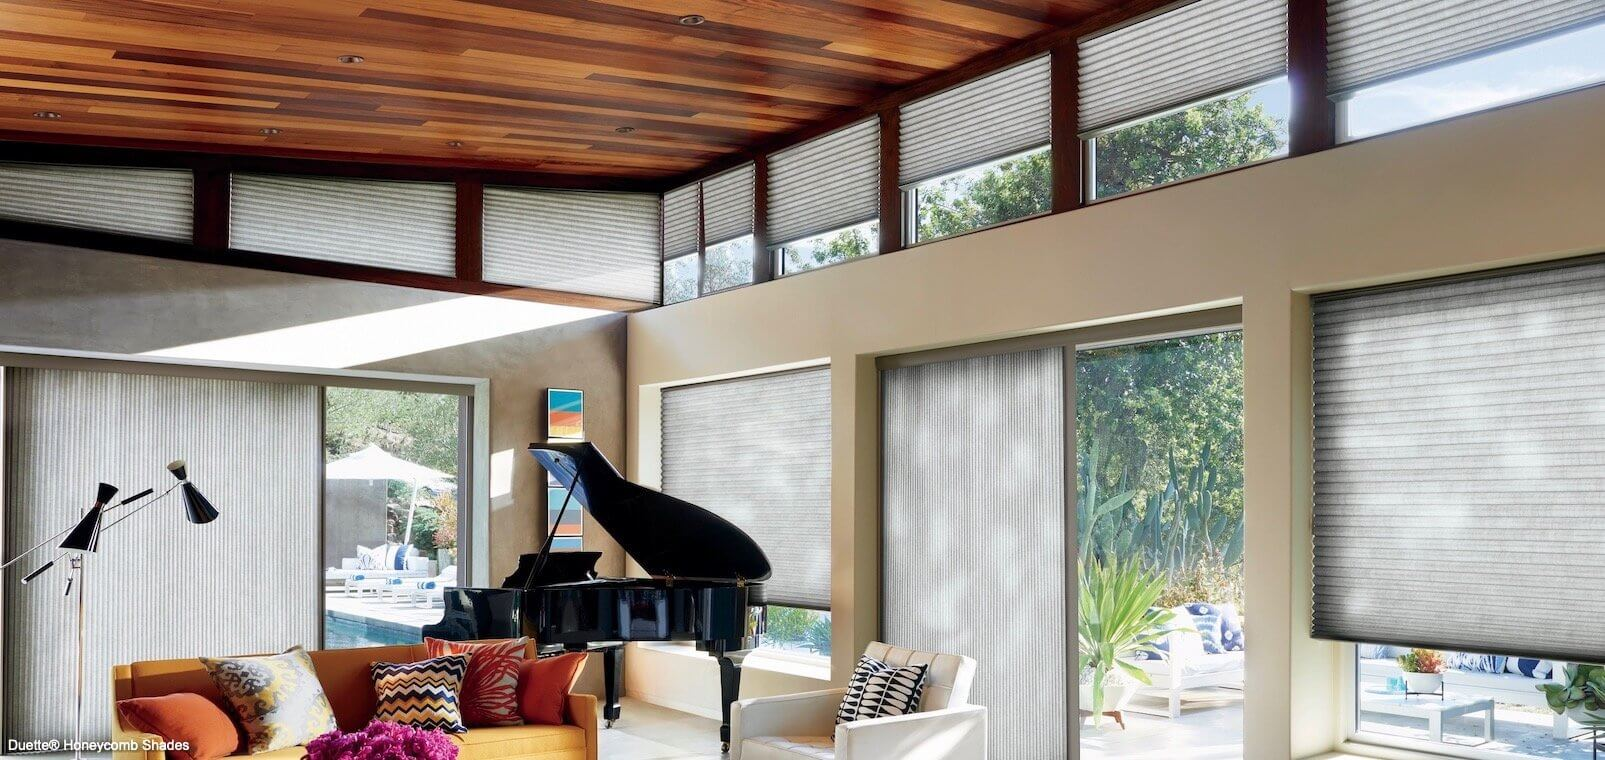 Duette Honeycomb Shades - PowerView- Trielle - Great Room